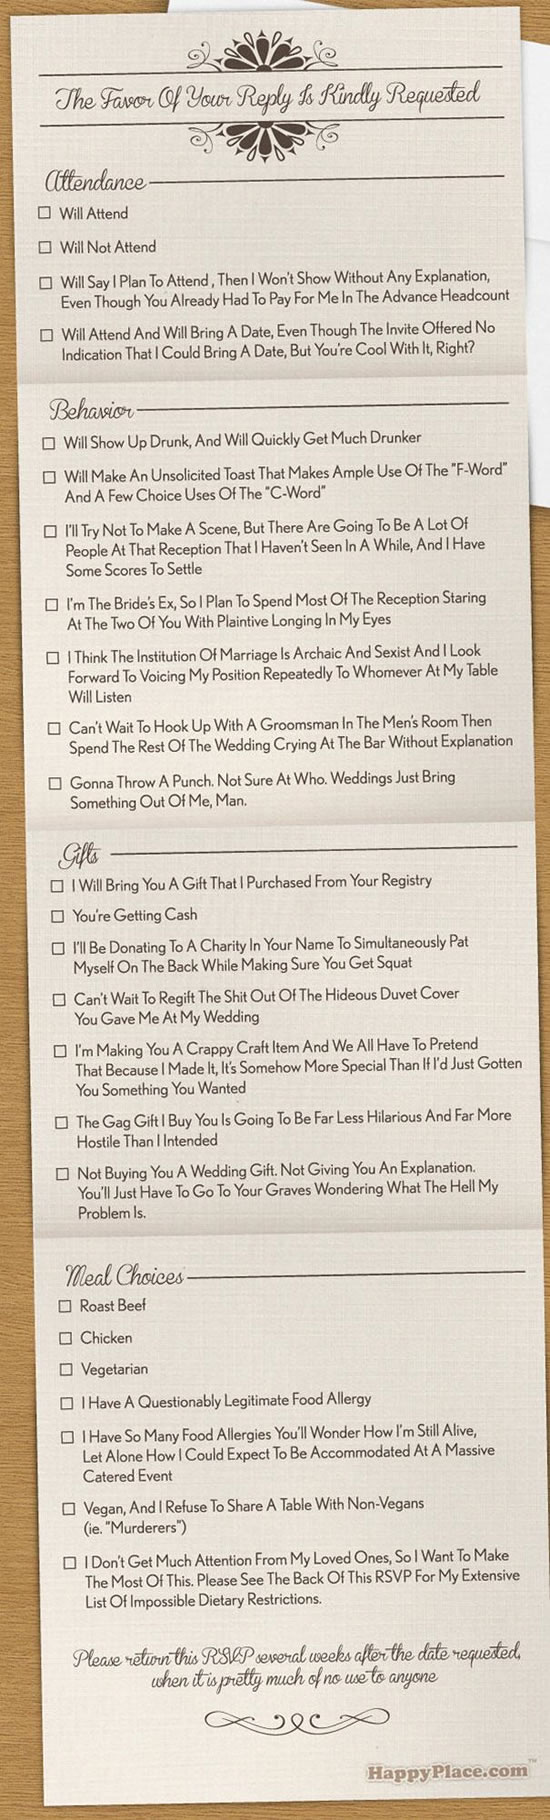 4 Funny Wedding Invitation Top 20 Hilarious Cards (6)